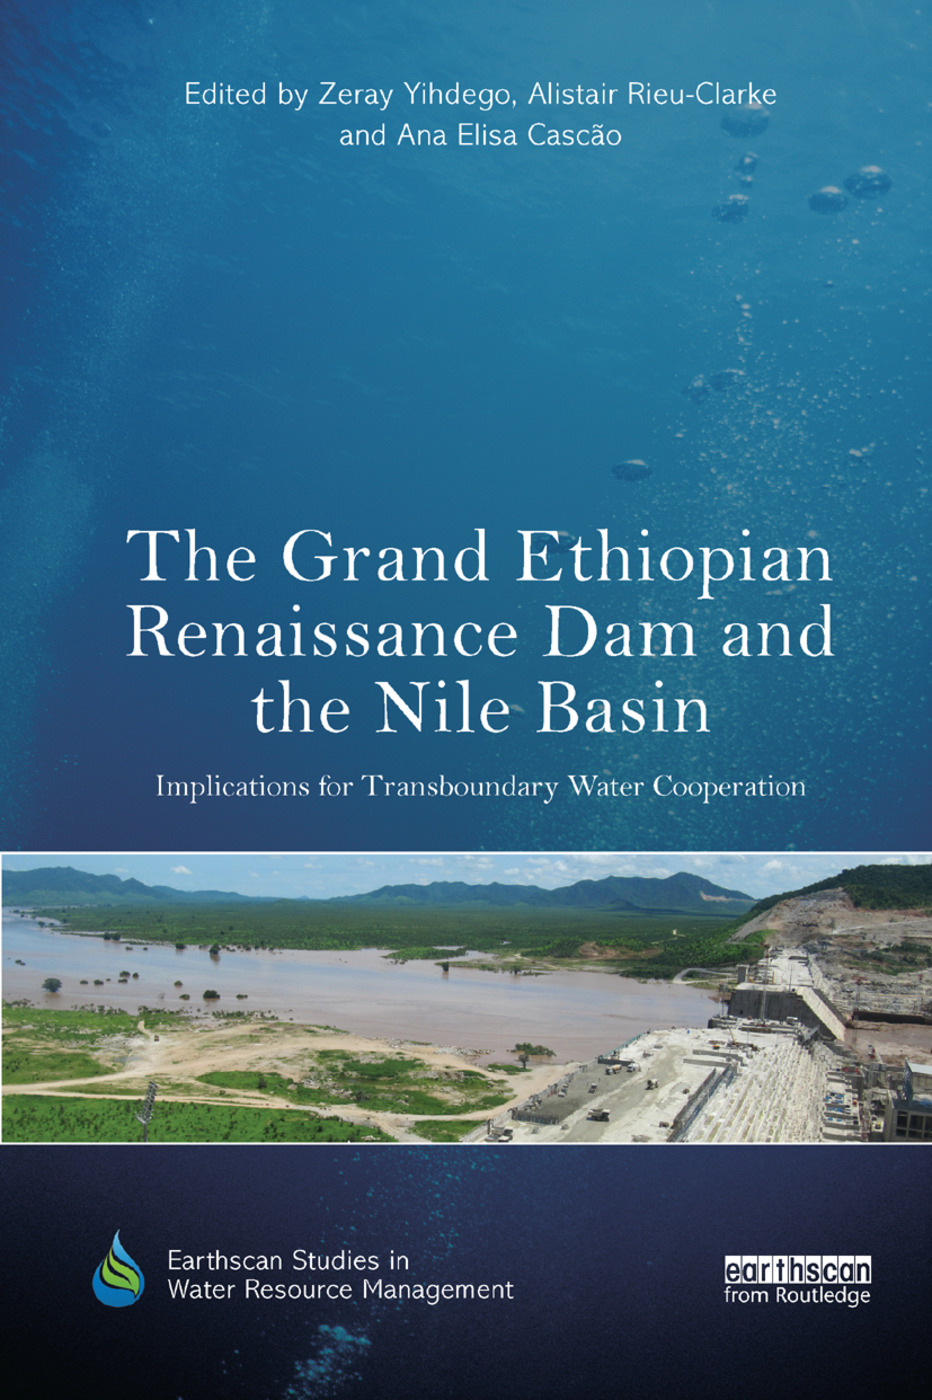 The Grand Ethiopian Renaissance Dam and the Nile Basin: Implications for Transboundary Water Cooperation book cover